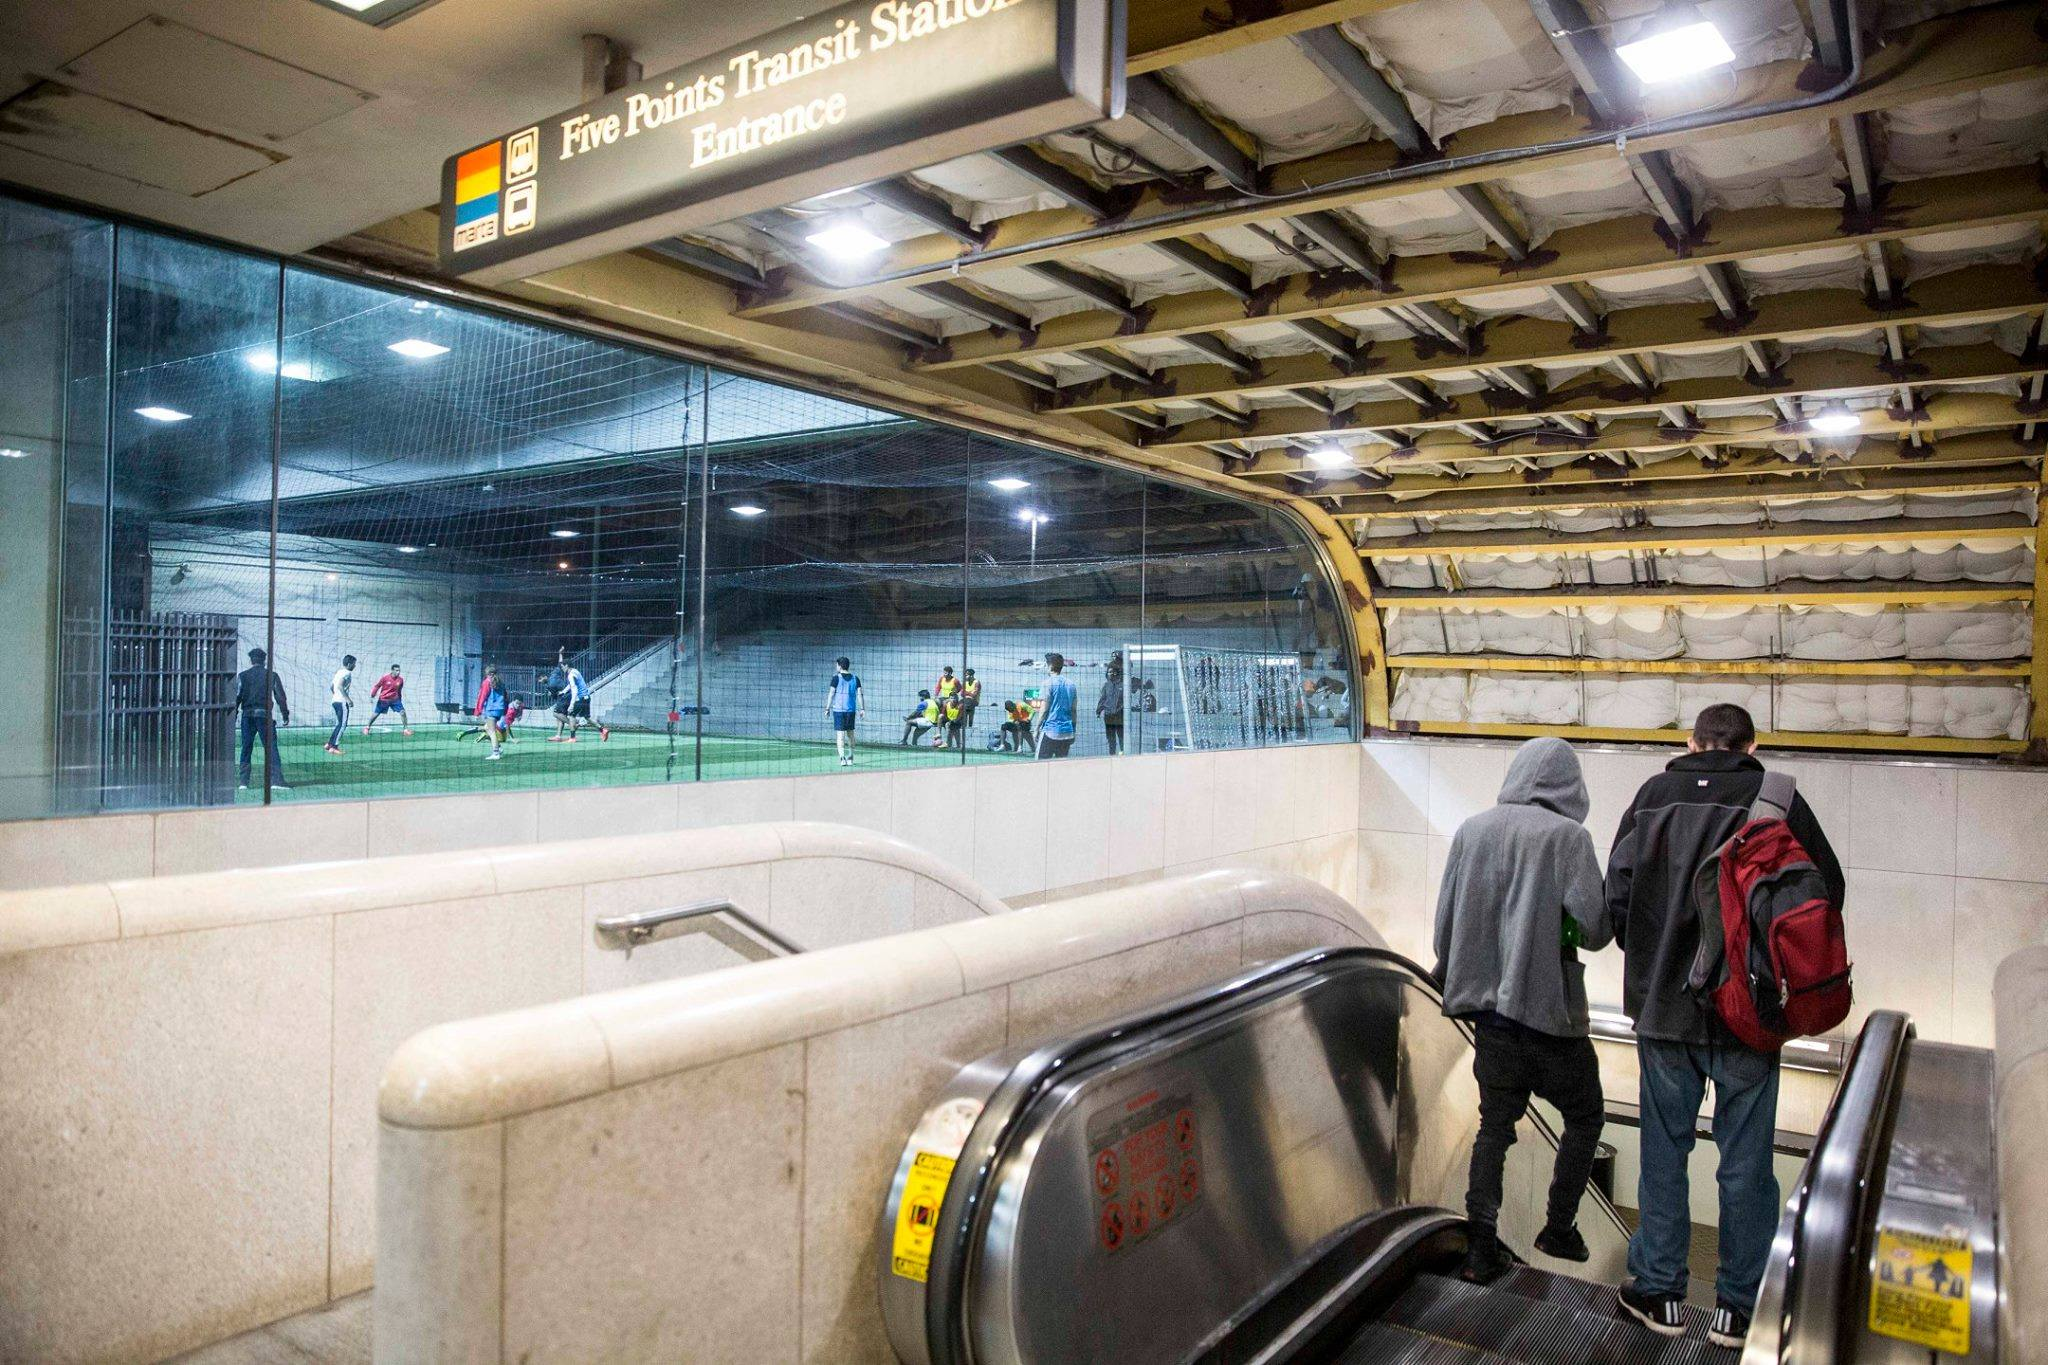 Station Soccer in transit centers